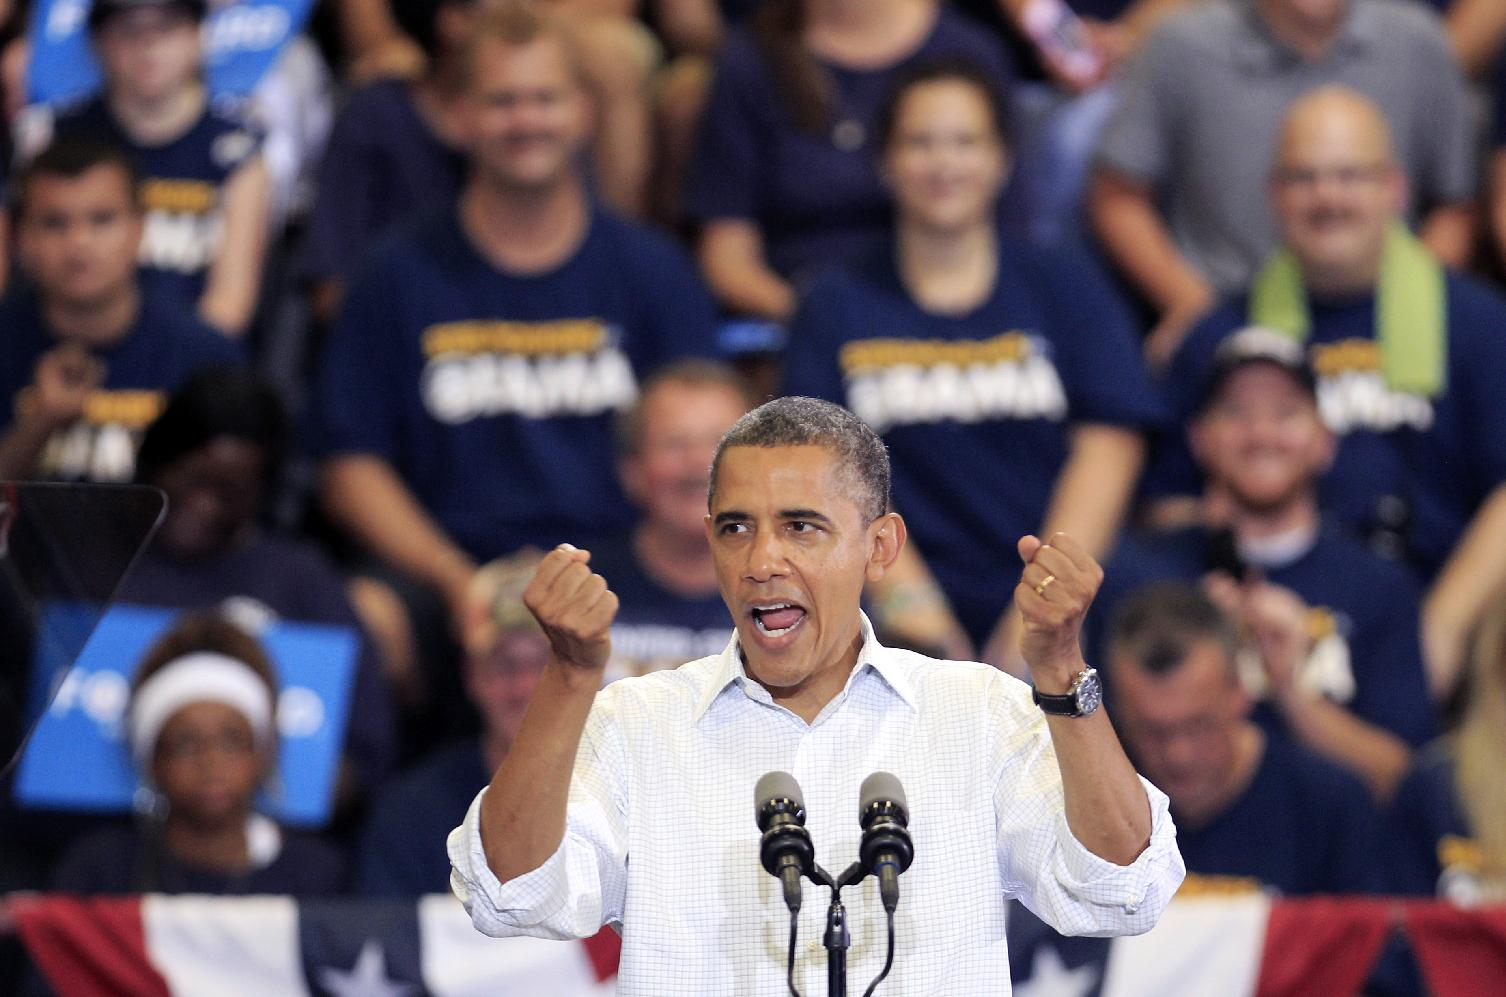 President Barack Obama speaks during a Sept. 3 campaign rally in Toledo, Ohio (Tony Dejak/AP)